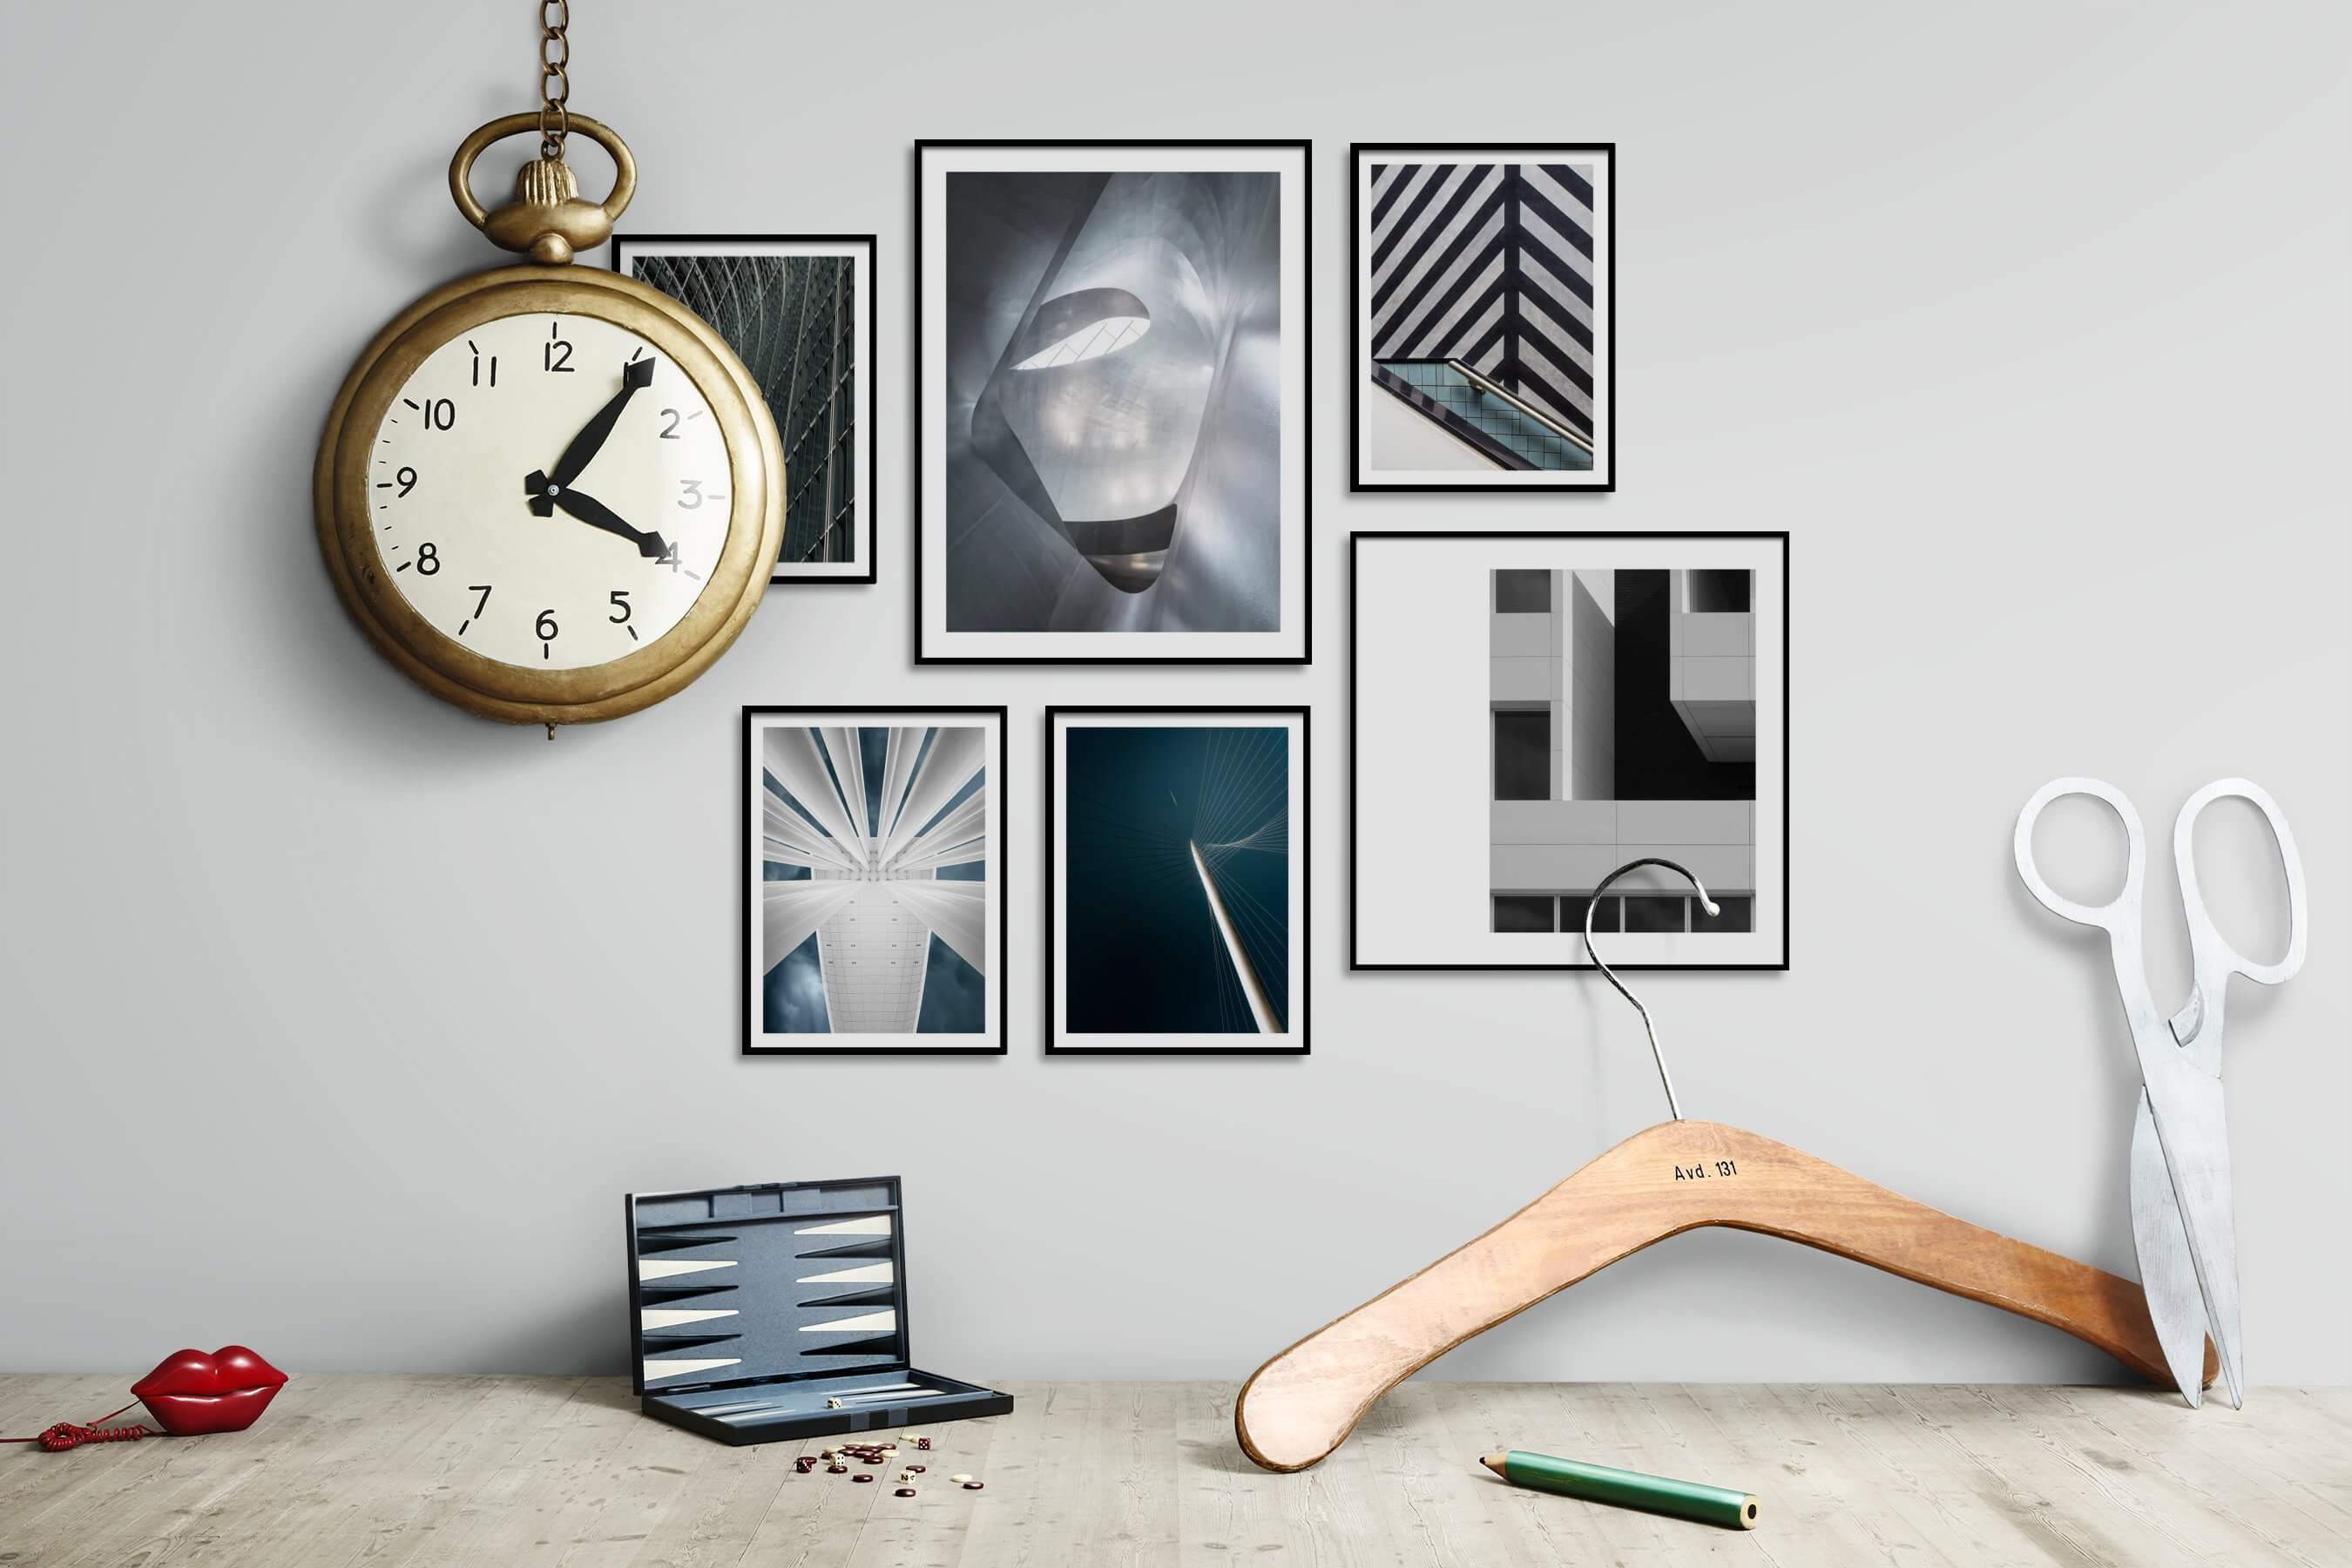 Gallery wall idea with six framed pictures arranged on a wall depicting For the Maximalist, For the Moderate, For the Minimalist, Black & White, and City Life